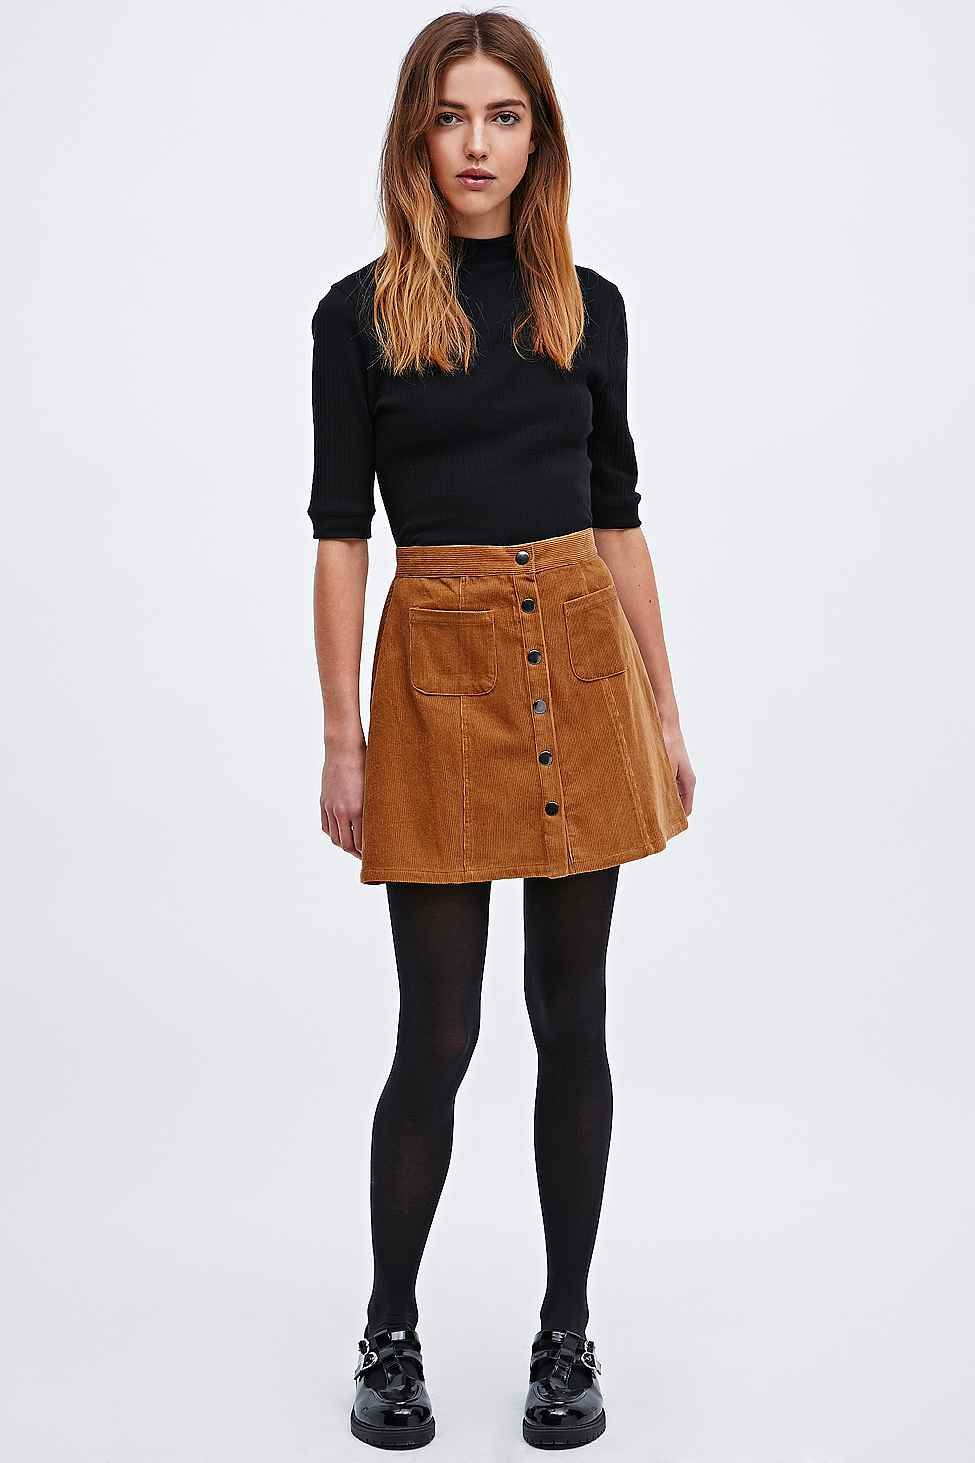 17 Best images about Style: brown suede skirt on Pinterest ...